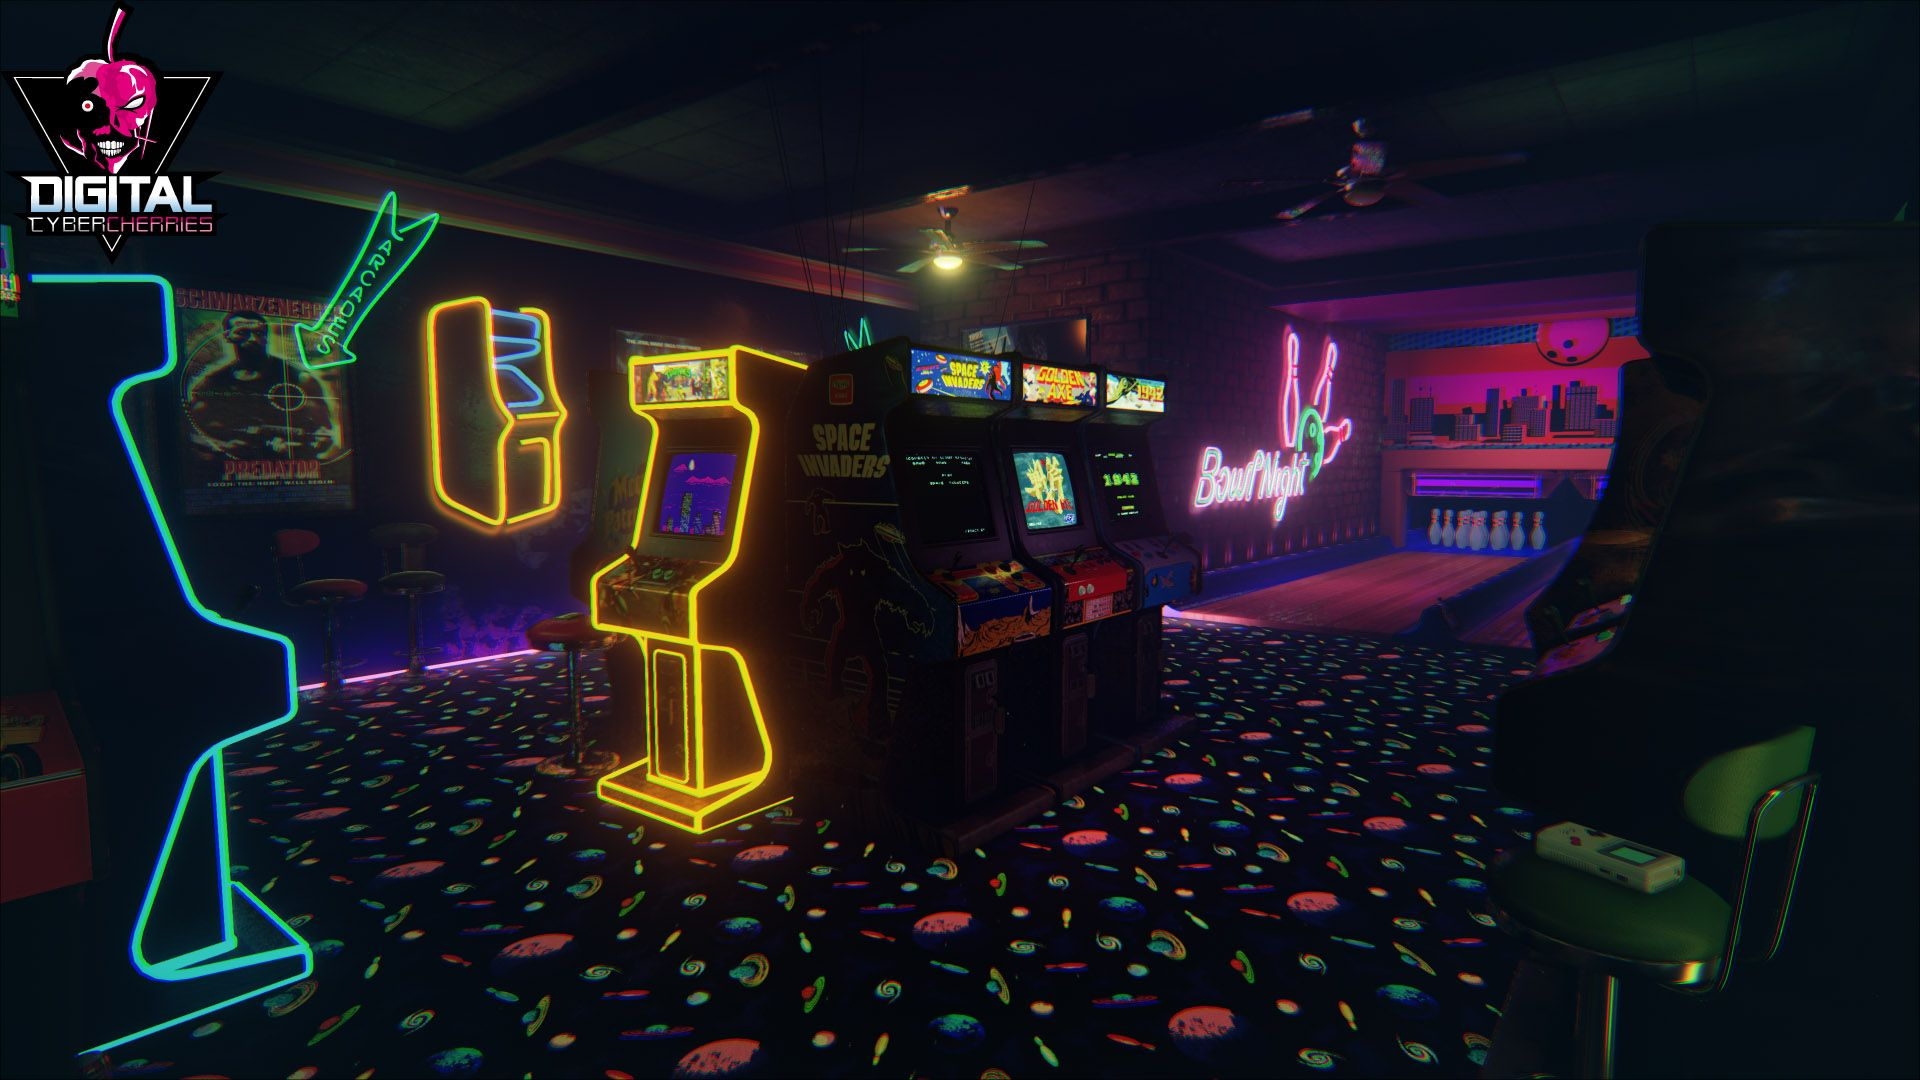 Idea: Arcade or video game store – dark space, neons, bright colors